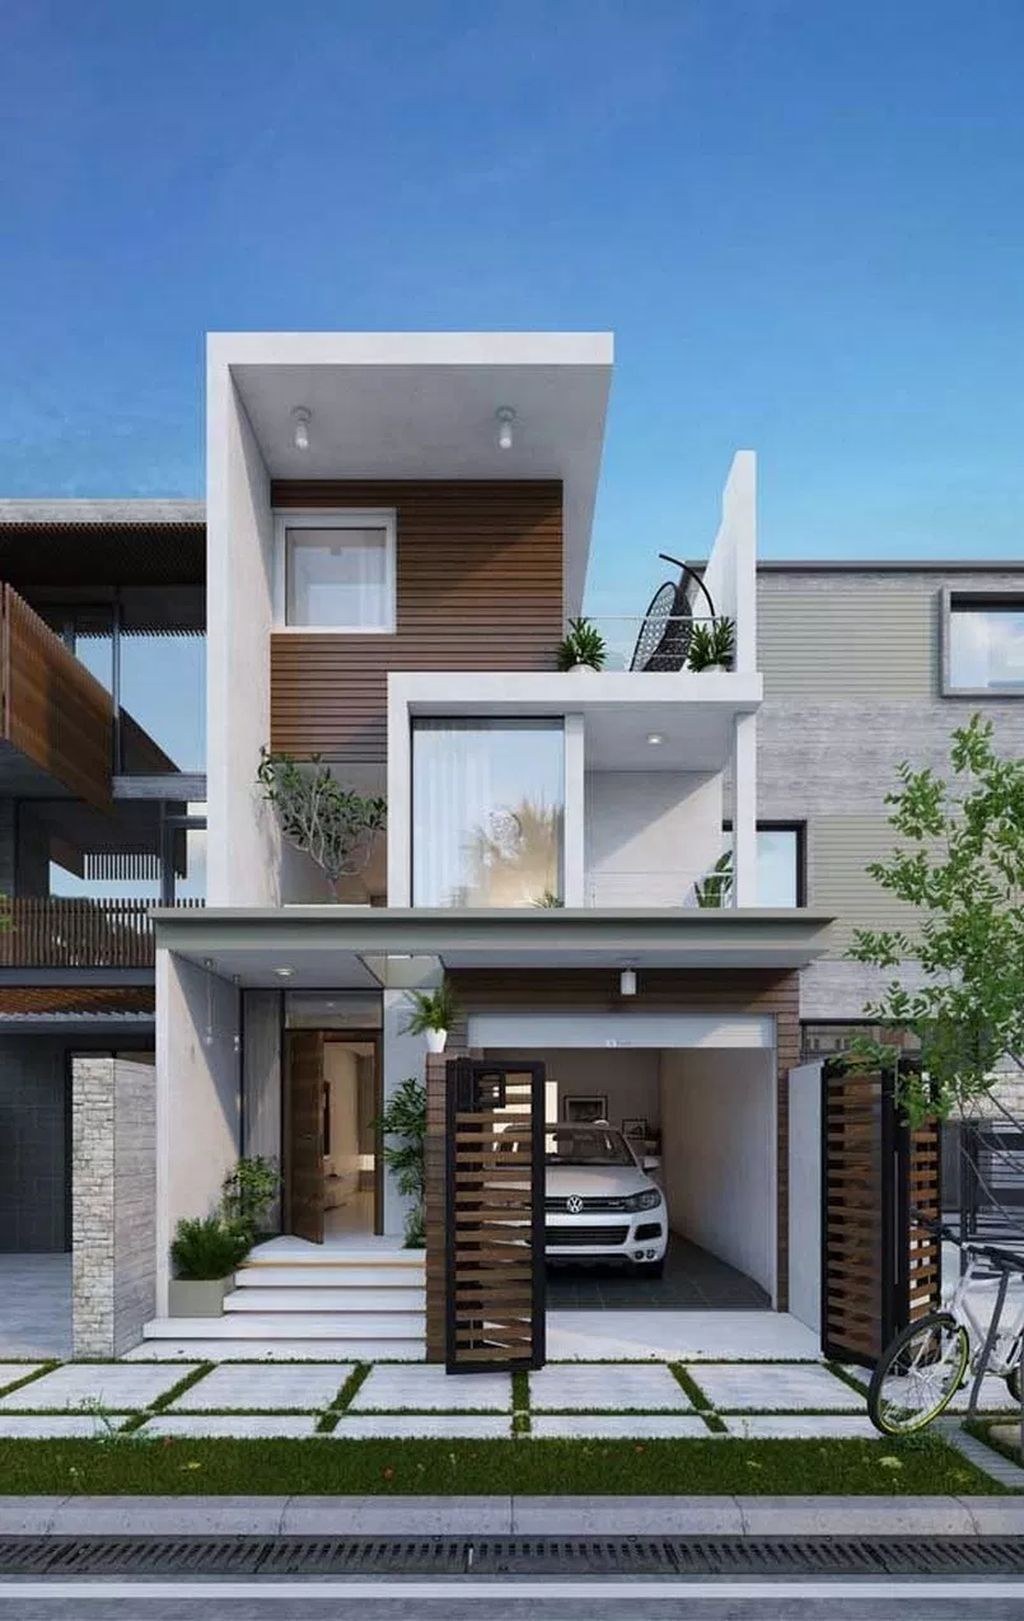 43 Modern House Exterior Design Ideas To Copy Rigth Now House Design Exterior Contem In 2020 Small House Exteriors Contemporary House Exterior Modern Minimalist House